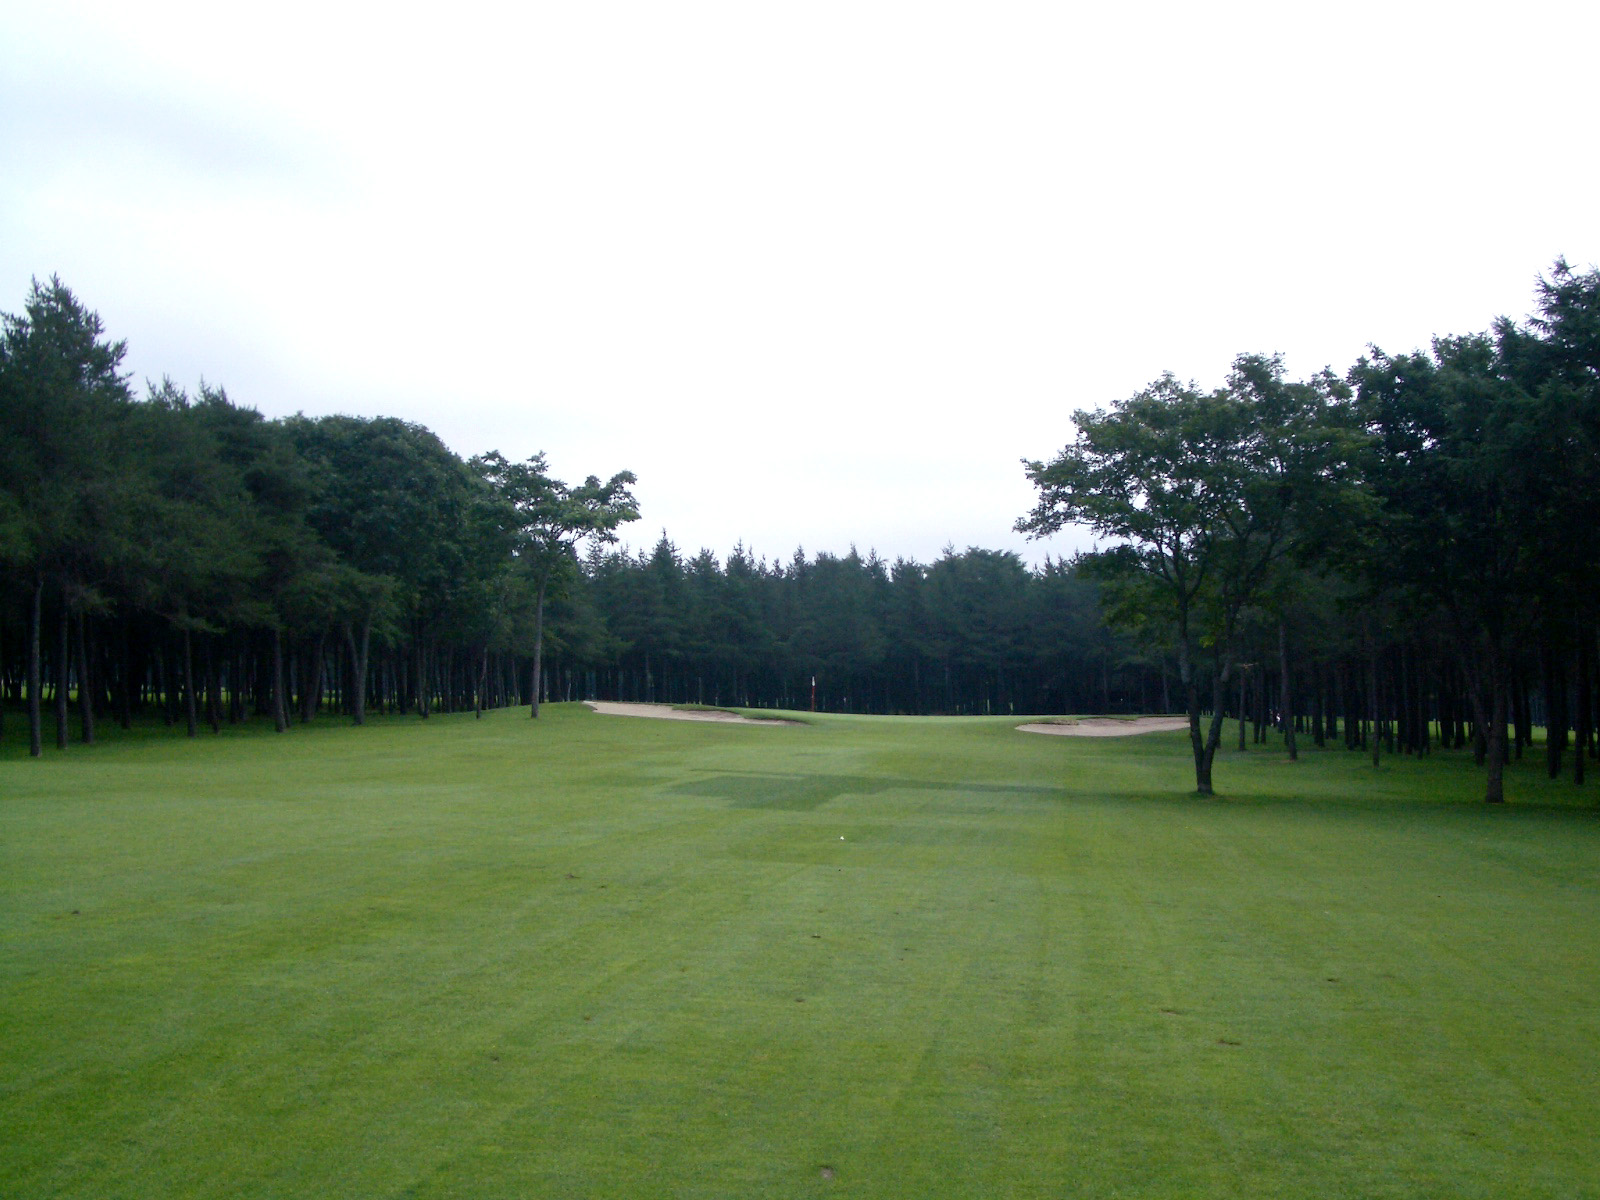 classics coursework The classic course has many colourful flourishes an island green on #17 draws inspiration from tpc sawgrass and is the site of many dramatic finishes over the final holes back to back 600+ yard holes at #13 and #14 demand long and accurate shot making.